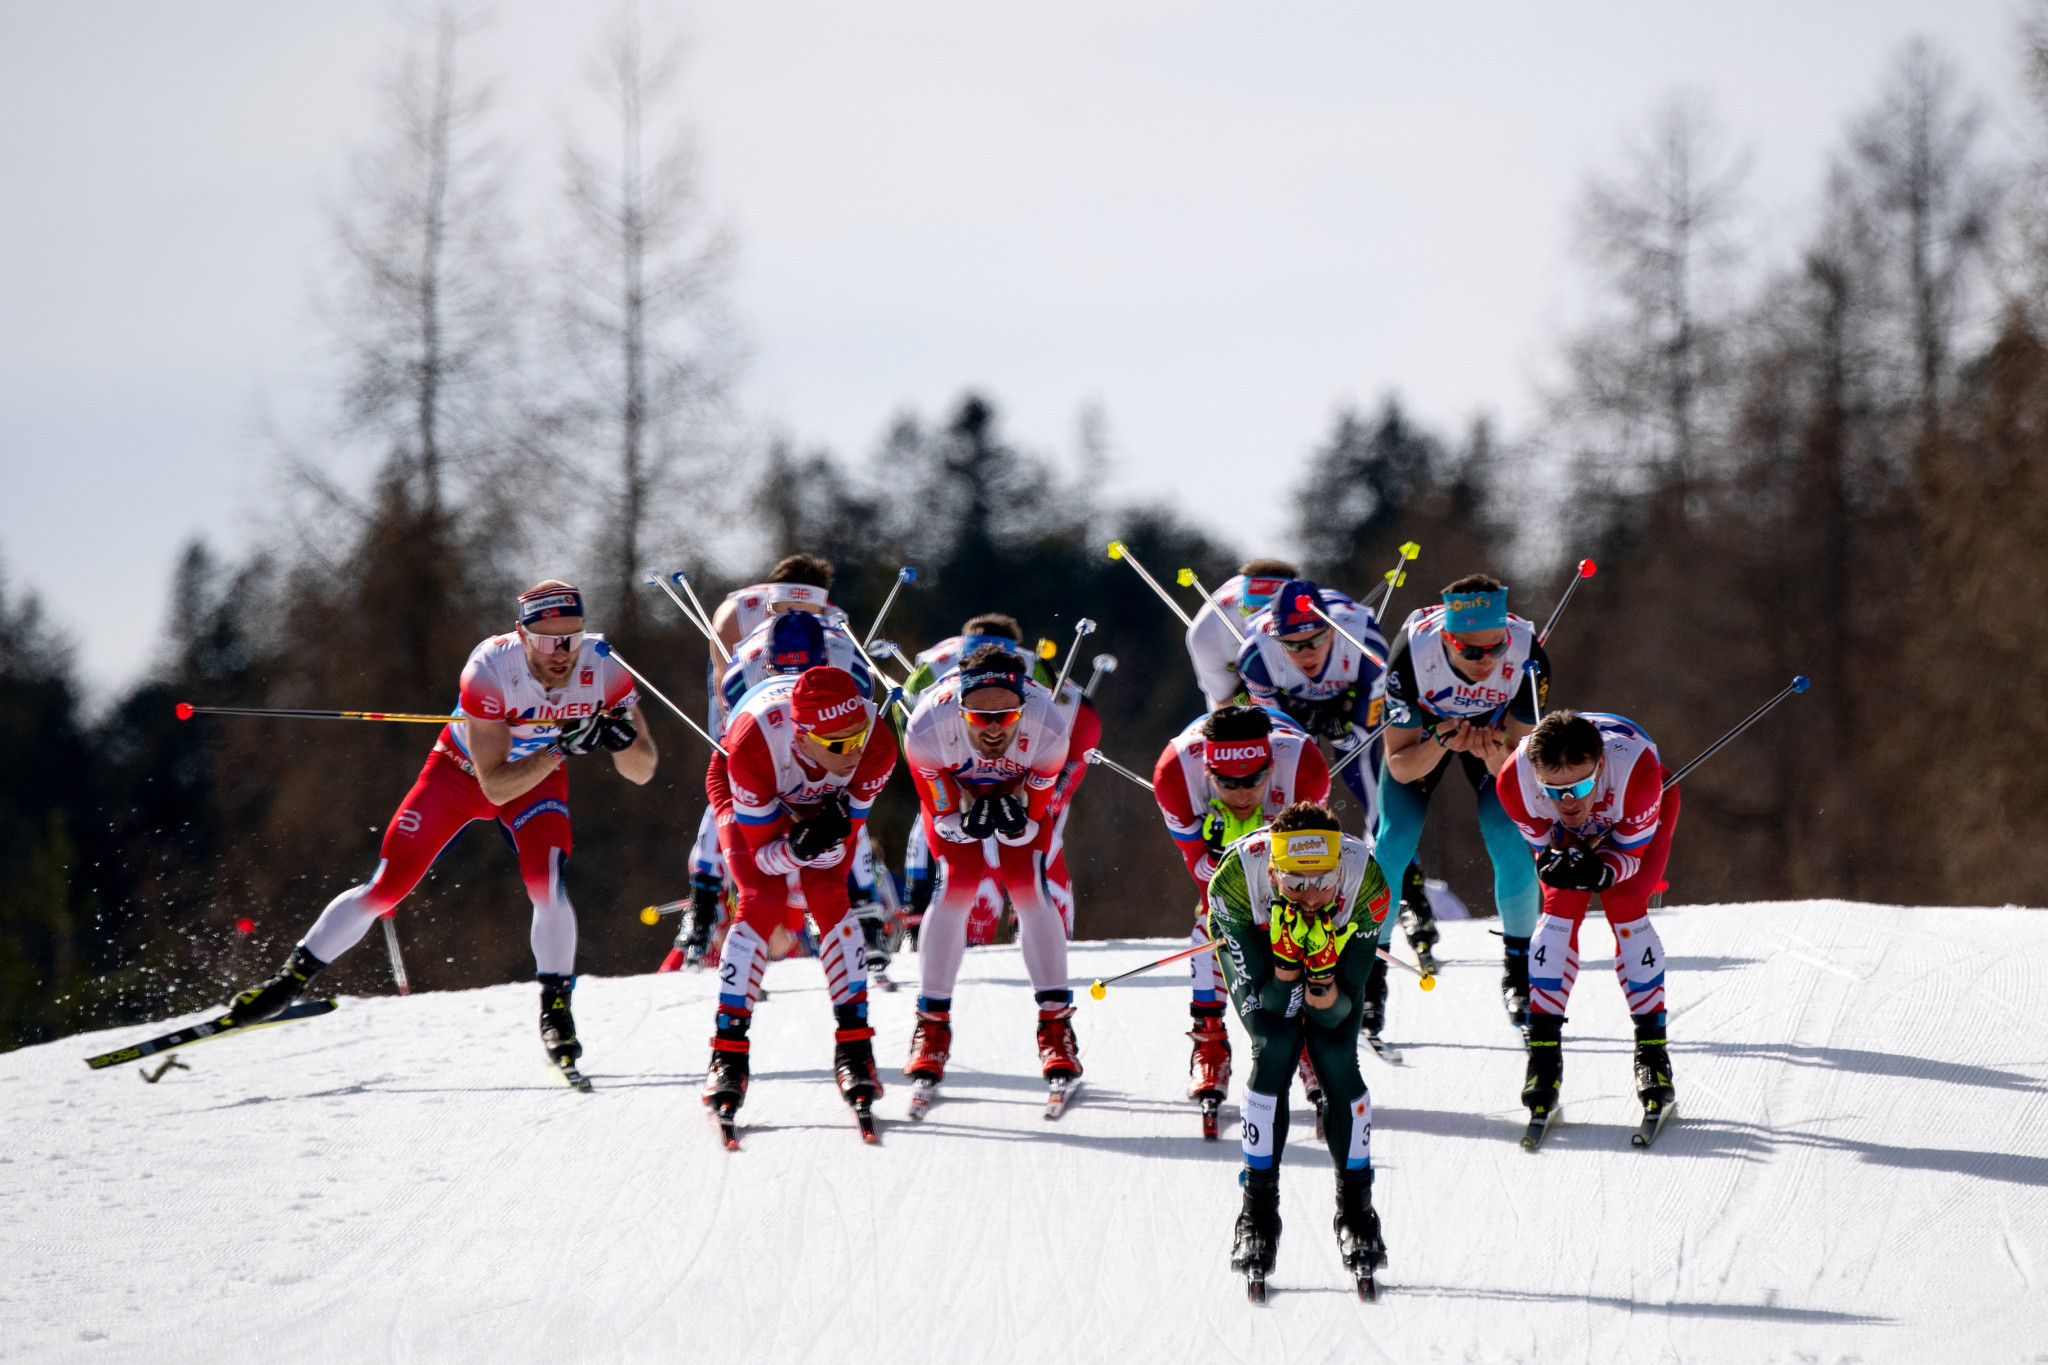 Seefeld in Austria hosted this year's edition of the FIS Nordic World Ski Championships ©Getty Images